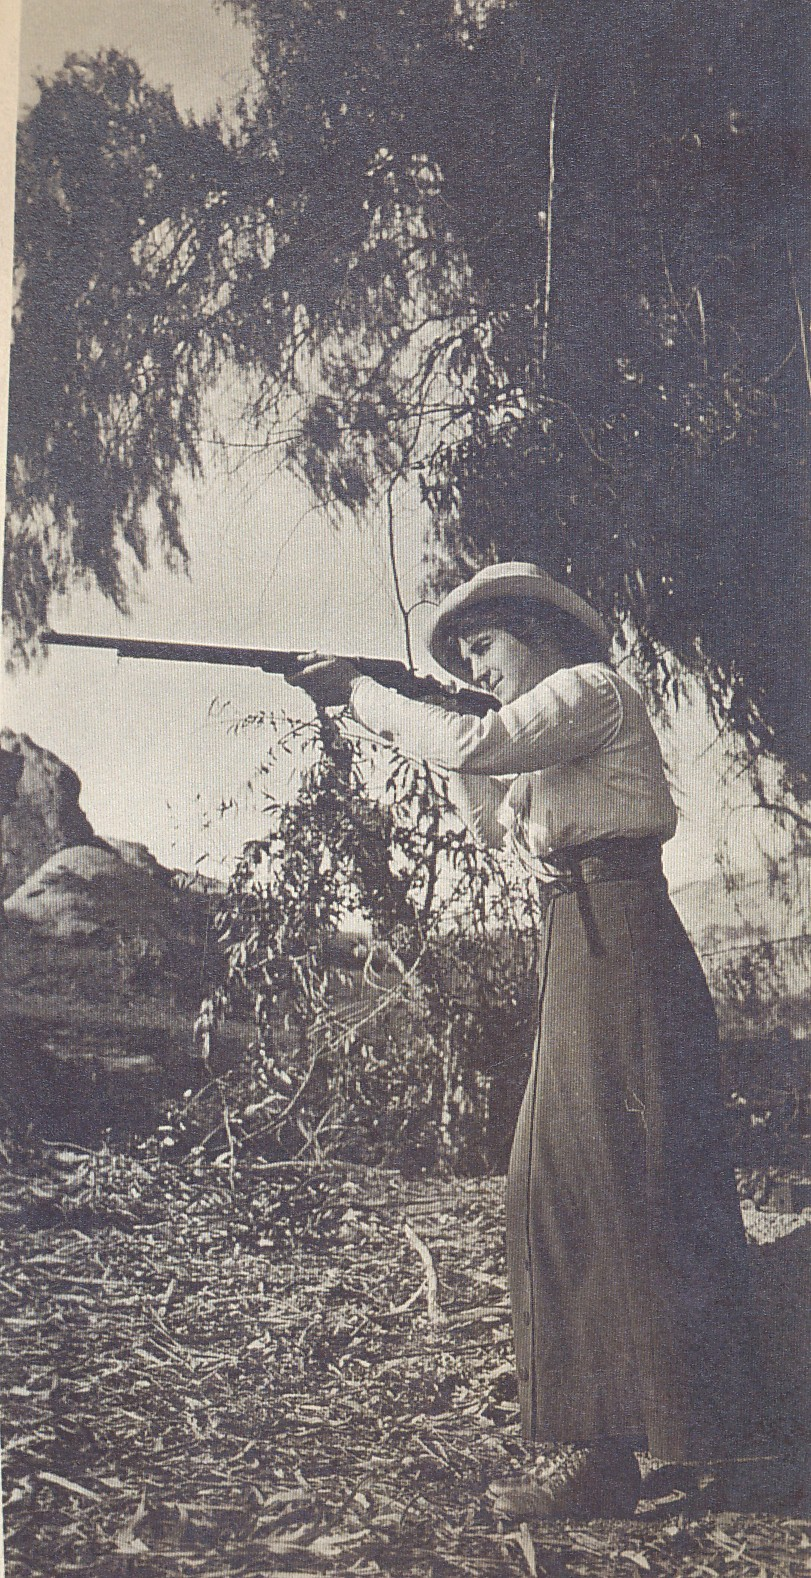 Young adult Helen Congdon stands on a rivebank and takes aim with a rifle. She is wearing a dress, boots, and a nice hat.